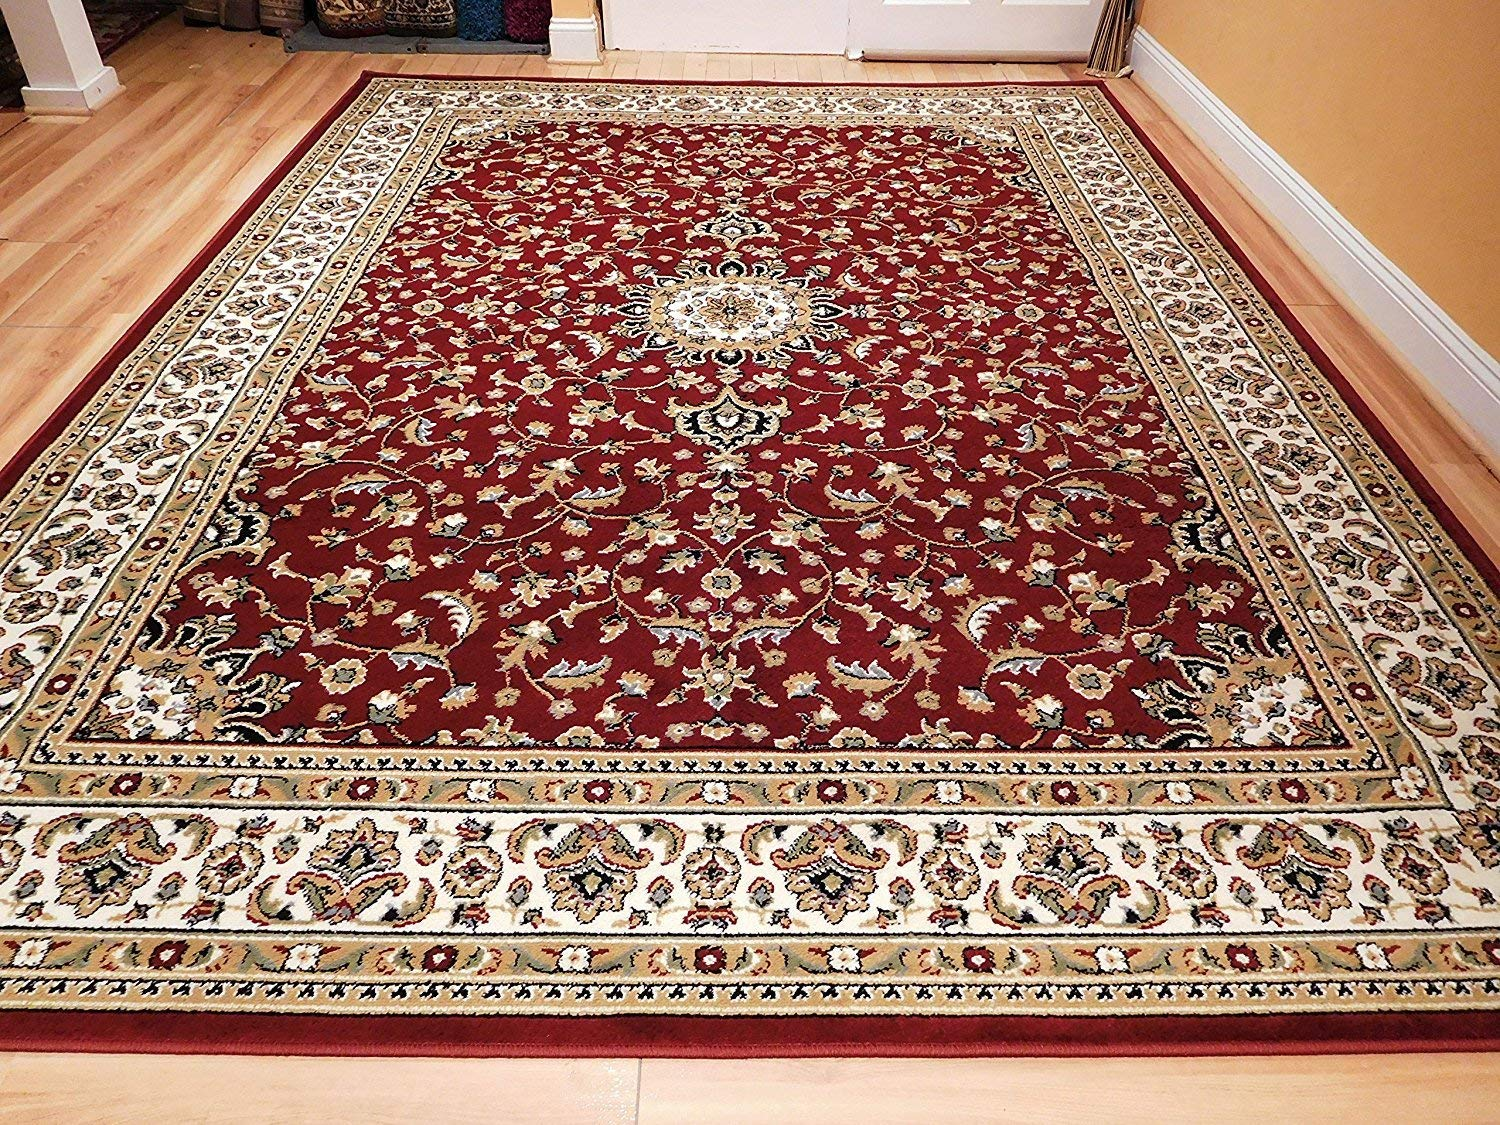 Carpet rug amazon.com: large 5x8 red cream beige black isfahan area rug oriental carpet EYDUKXK